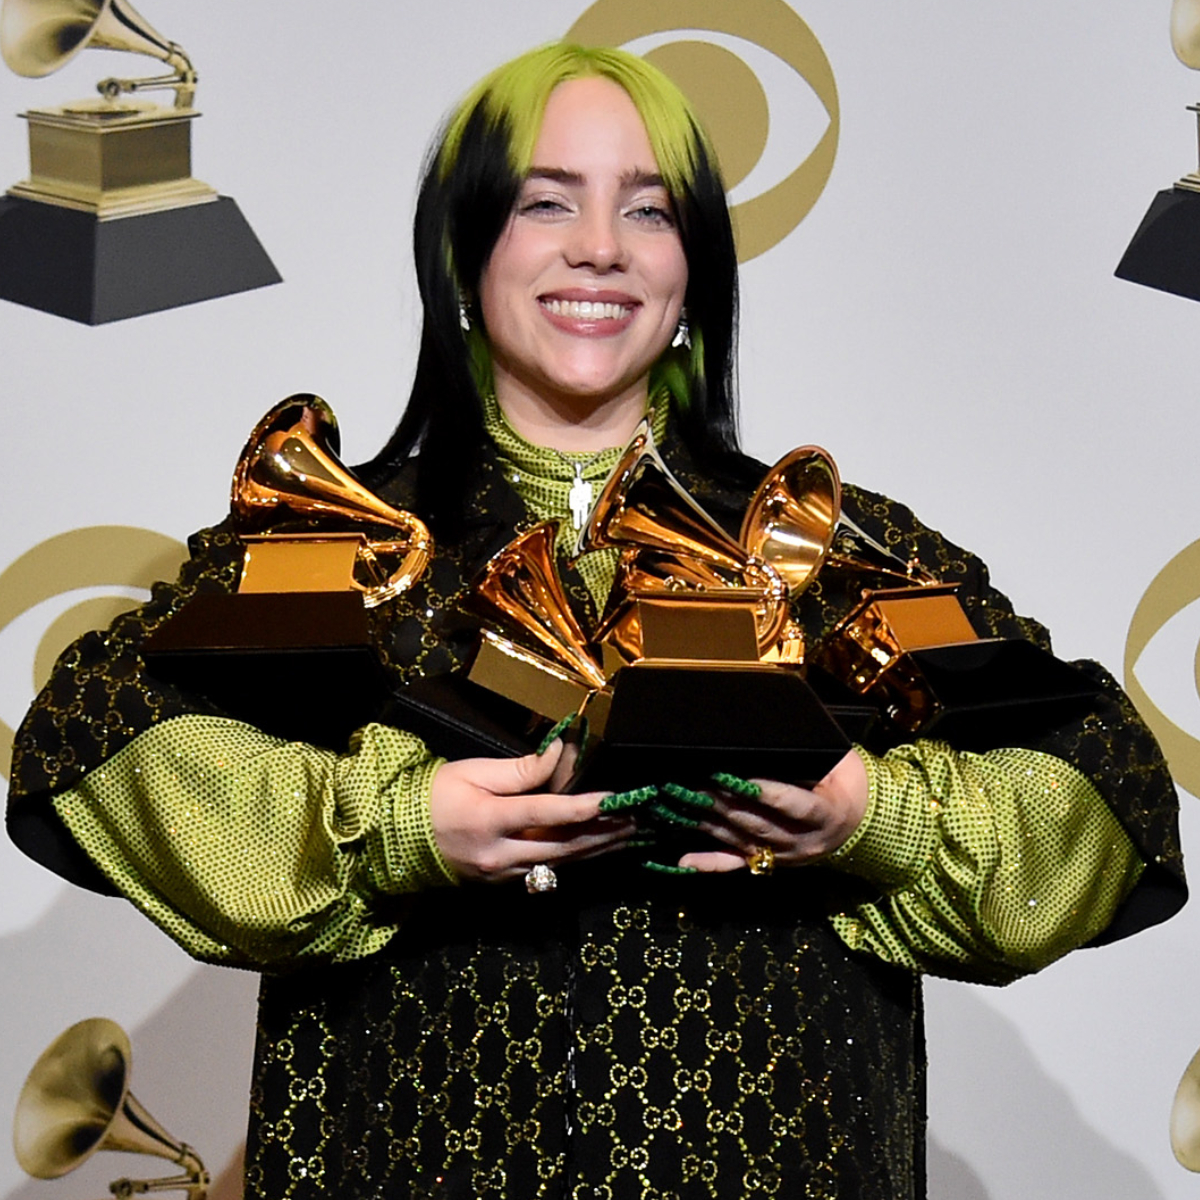 Grammys 2020: Billie Eilish wins ALL big categories & broke several records, including 1 held by Taylor Swift